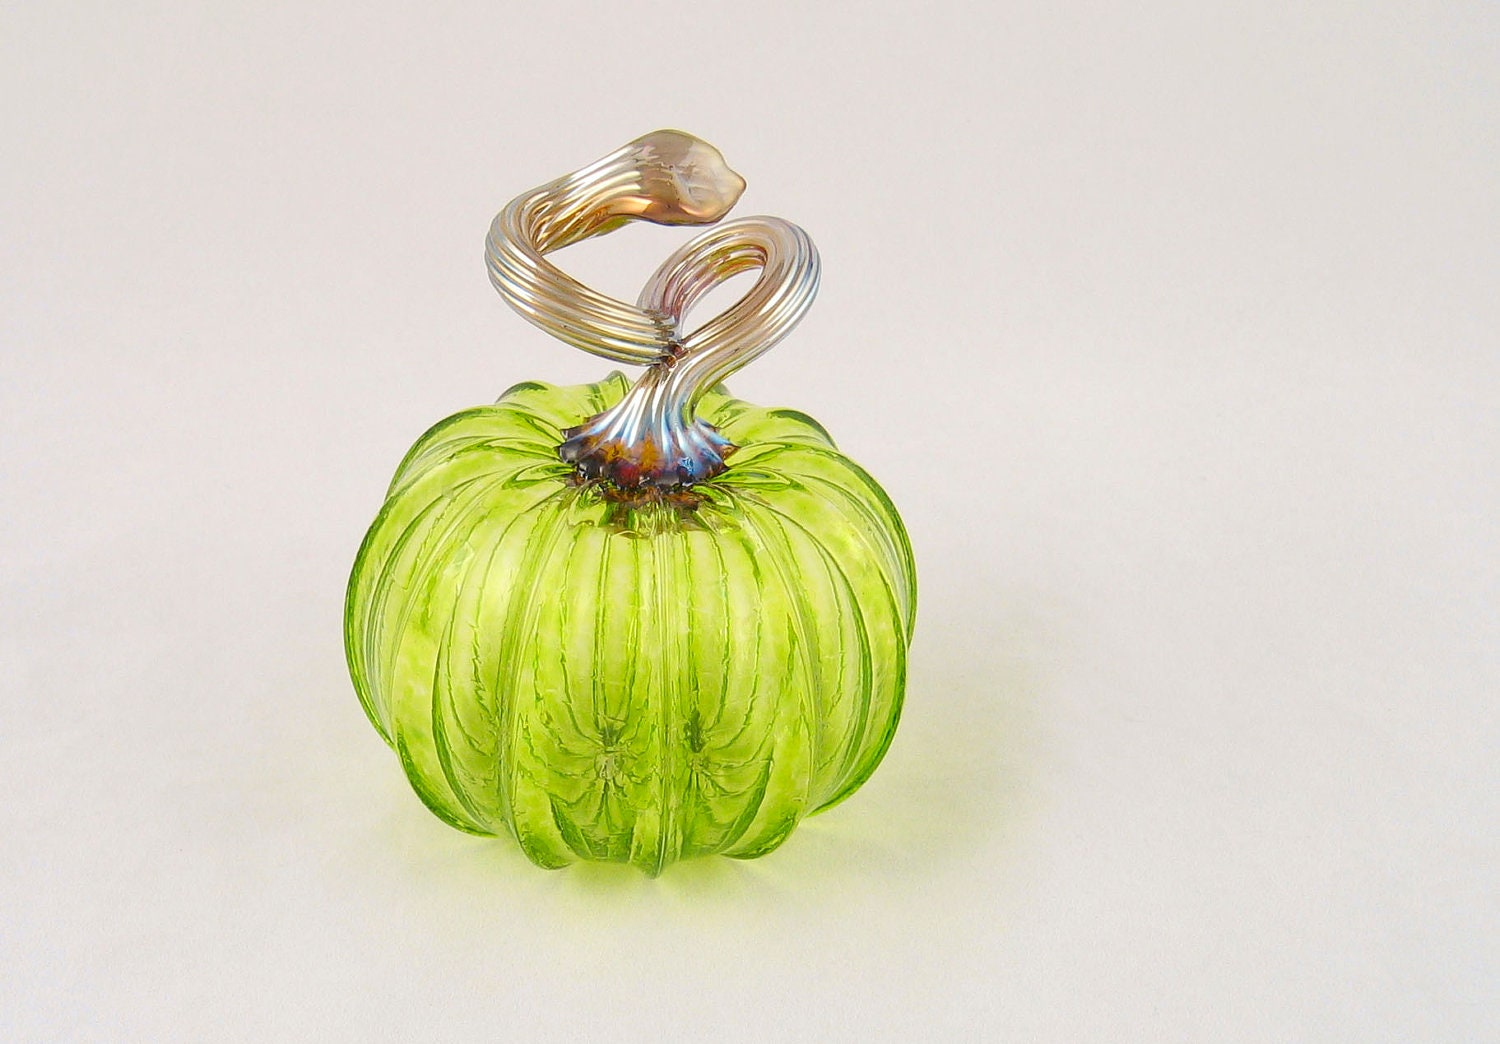 Transparent Green Glass Pumpkin Autumn Fall Decor Pumpkin Art by AvolieGlass - AvolieGlass